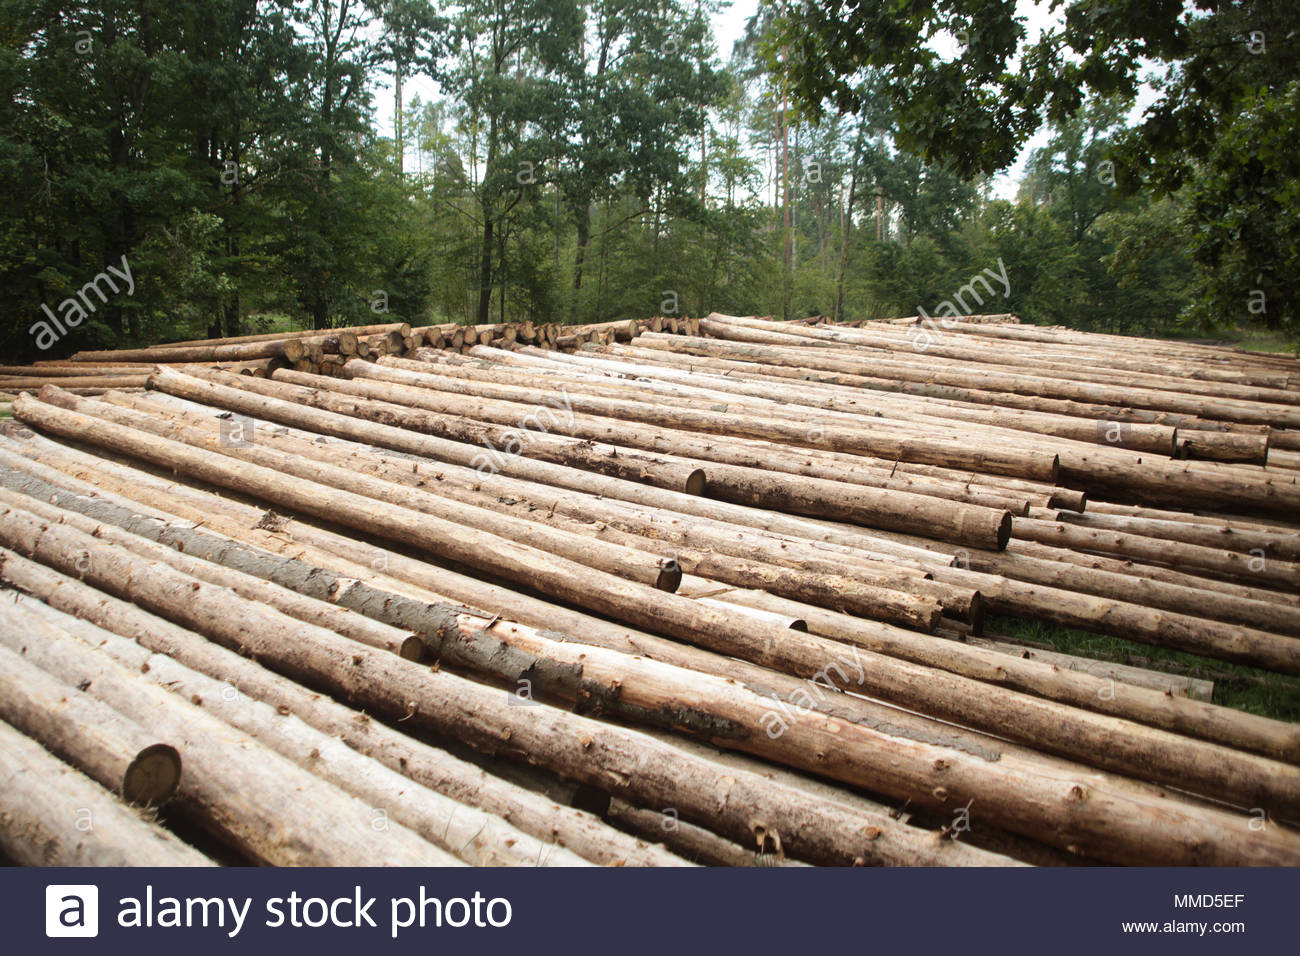 On 25 March 2016, Jan Szyszko, Poland's Environment Minister, announced that he would approve a tripling of logging in the forest, almost exhausted at - Stock Image